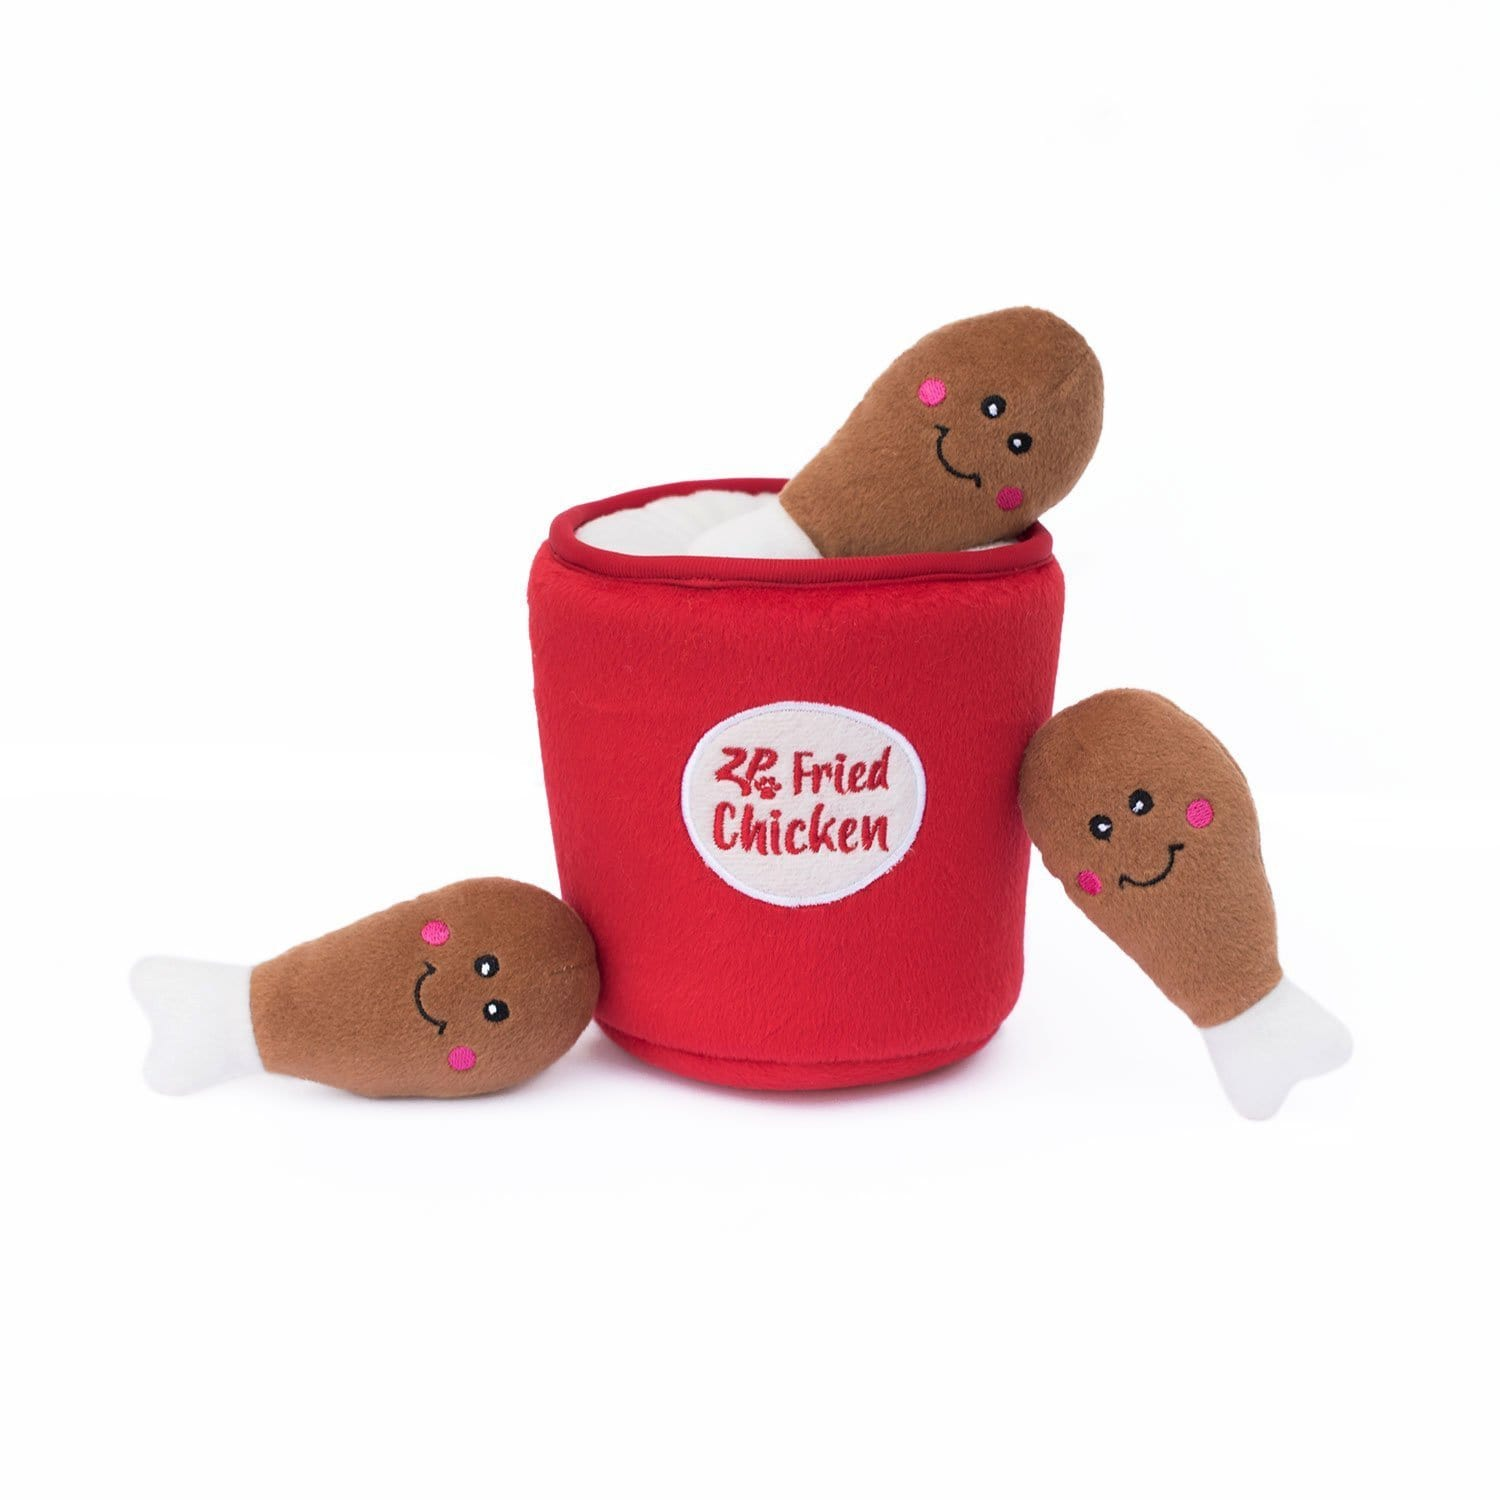 Zippy Paws Zippy Burrow - Chicken Bucket